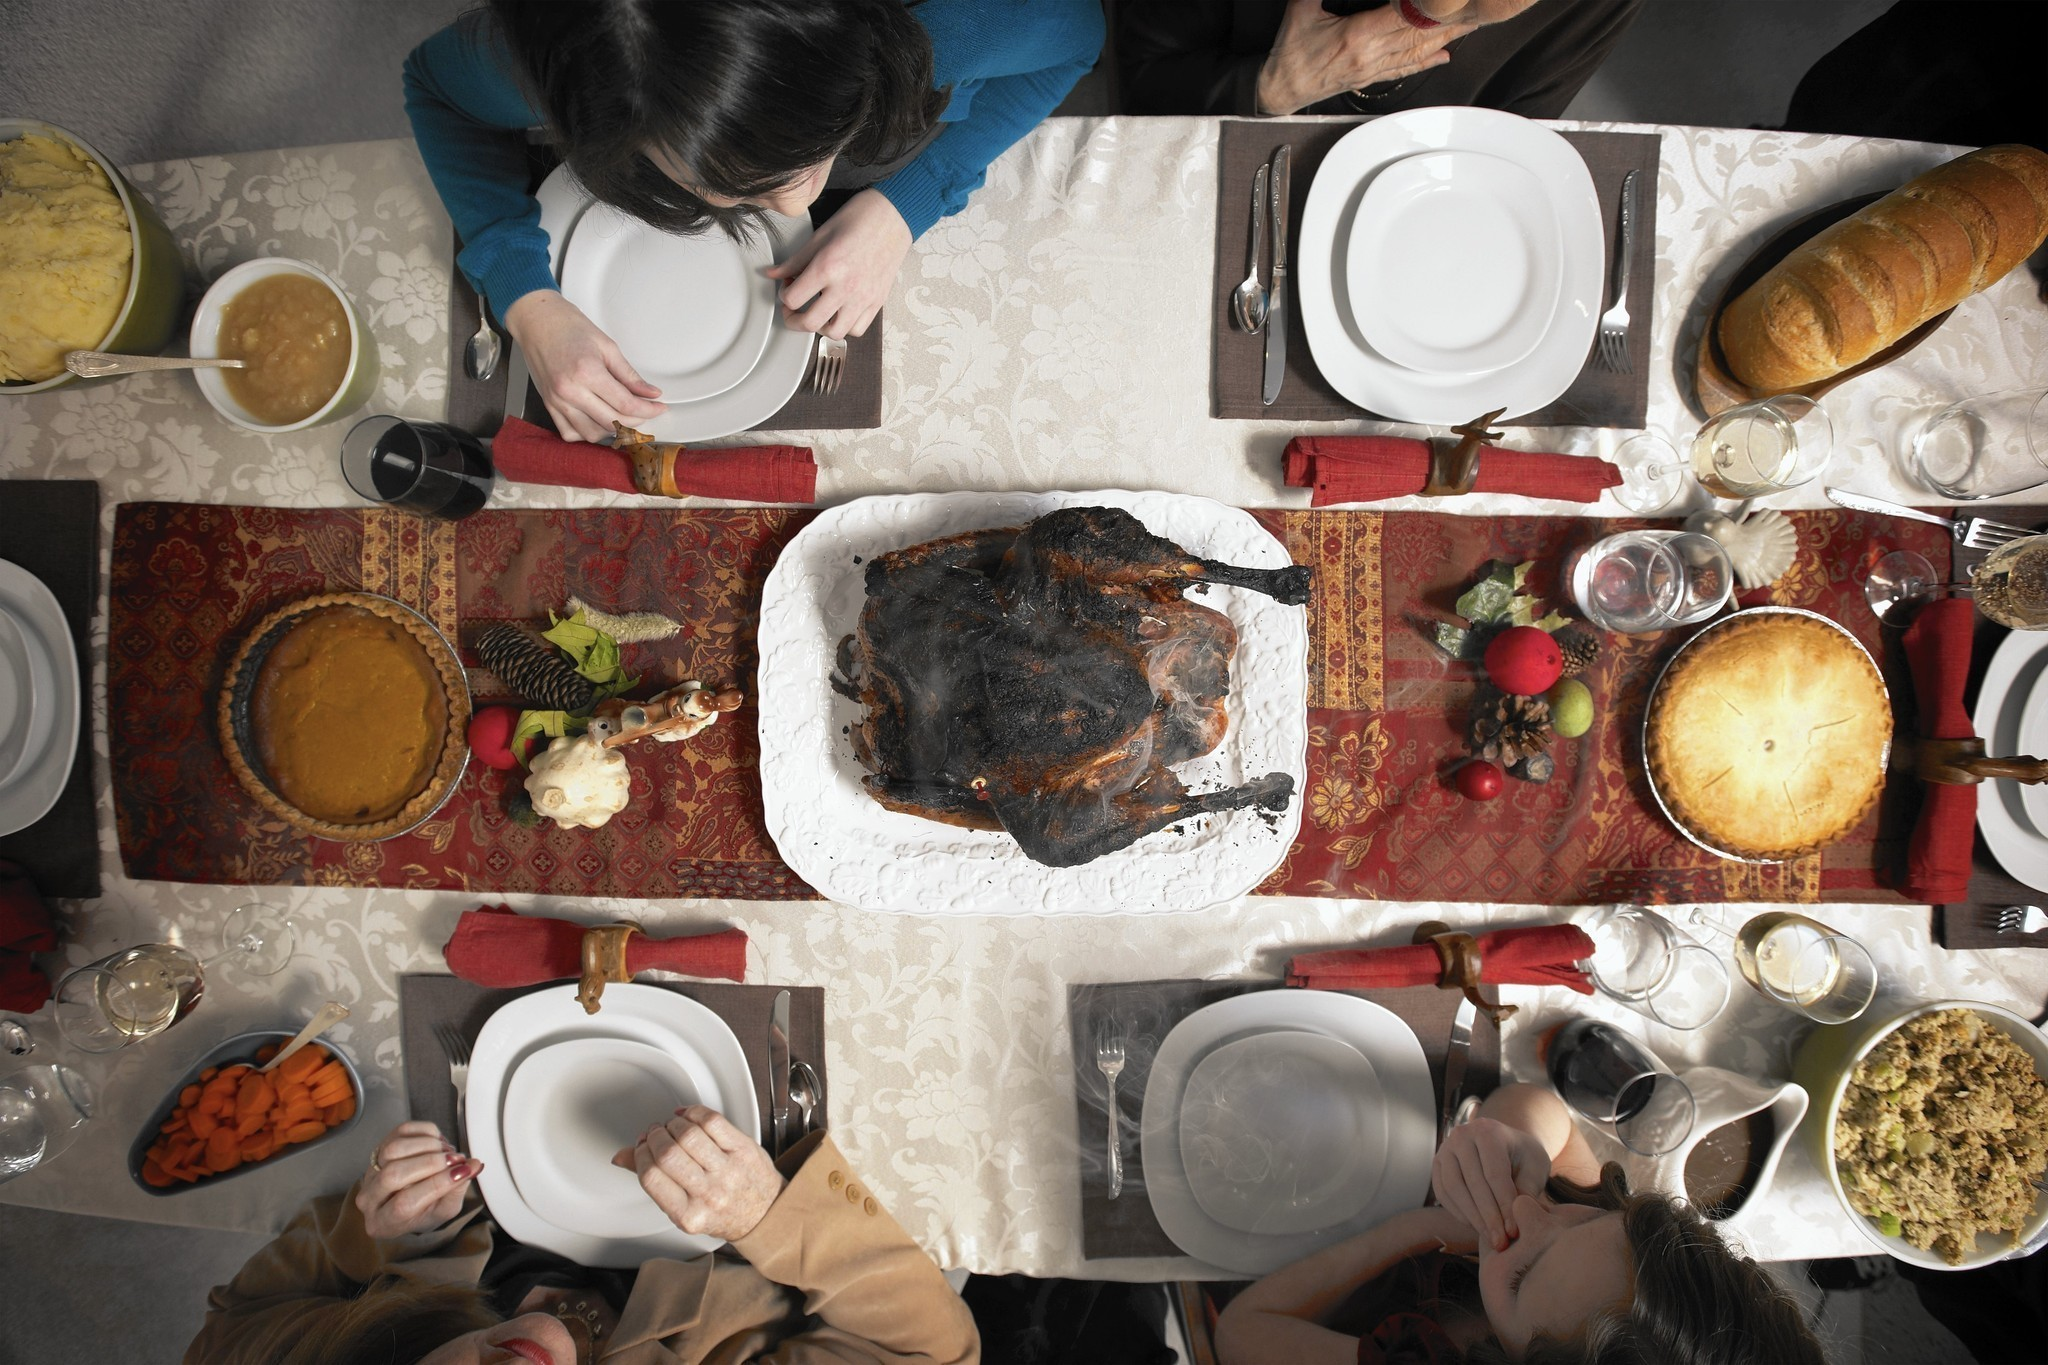 How To Keep Politics Off The Table At Thanksgiving